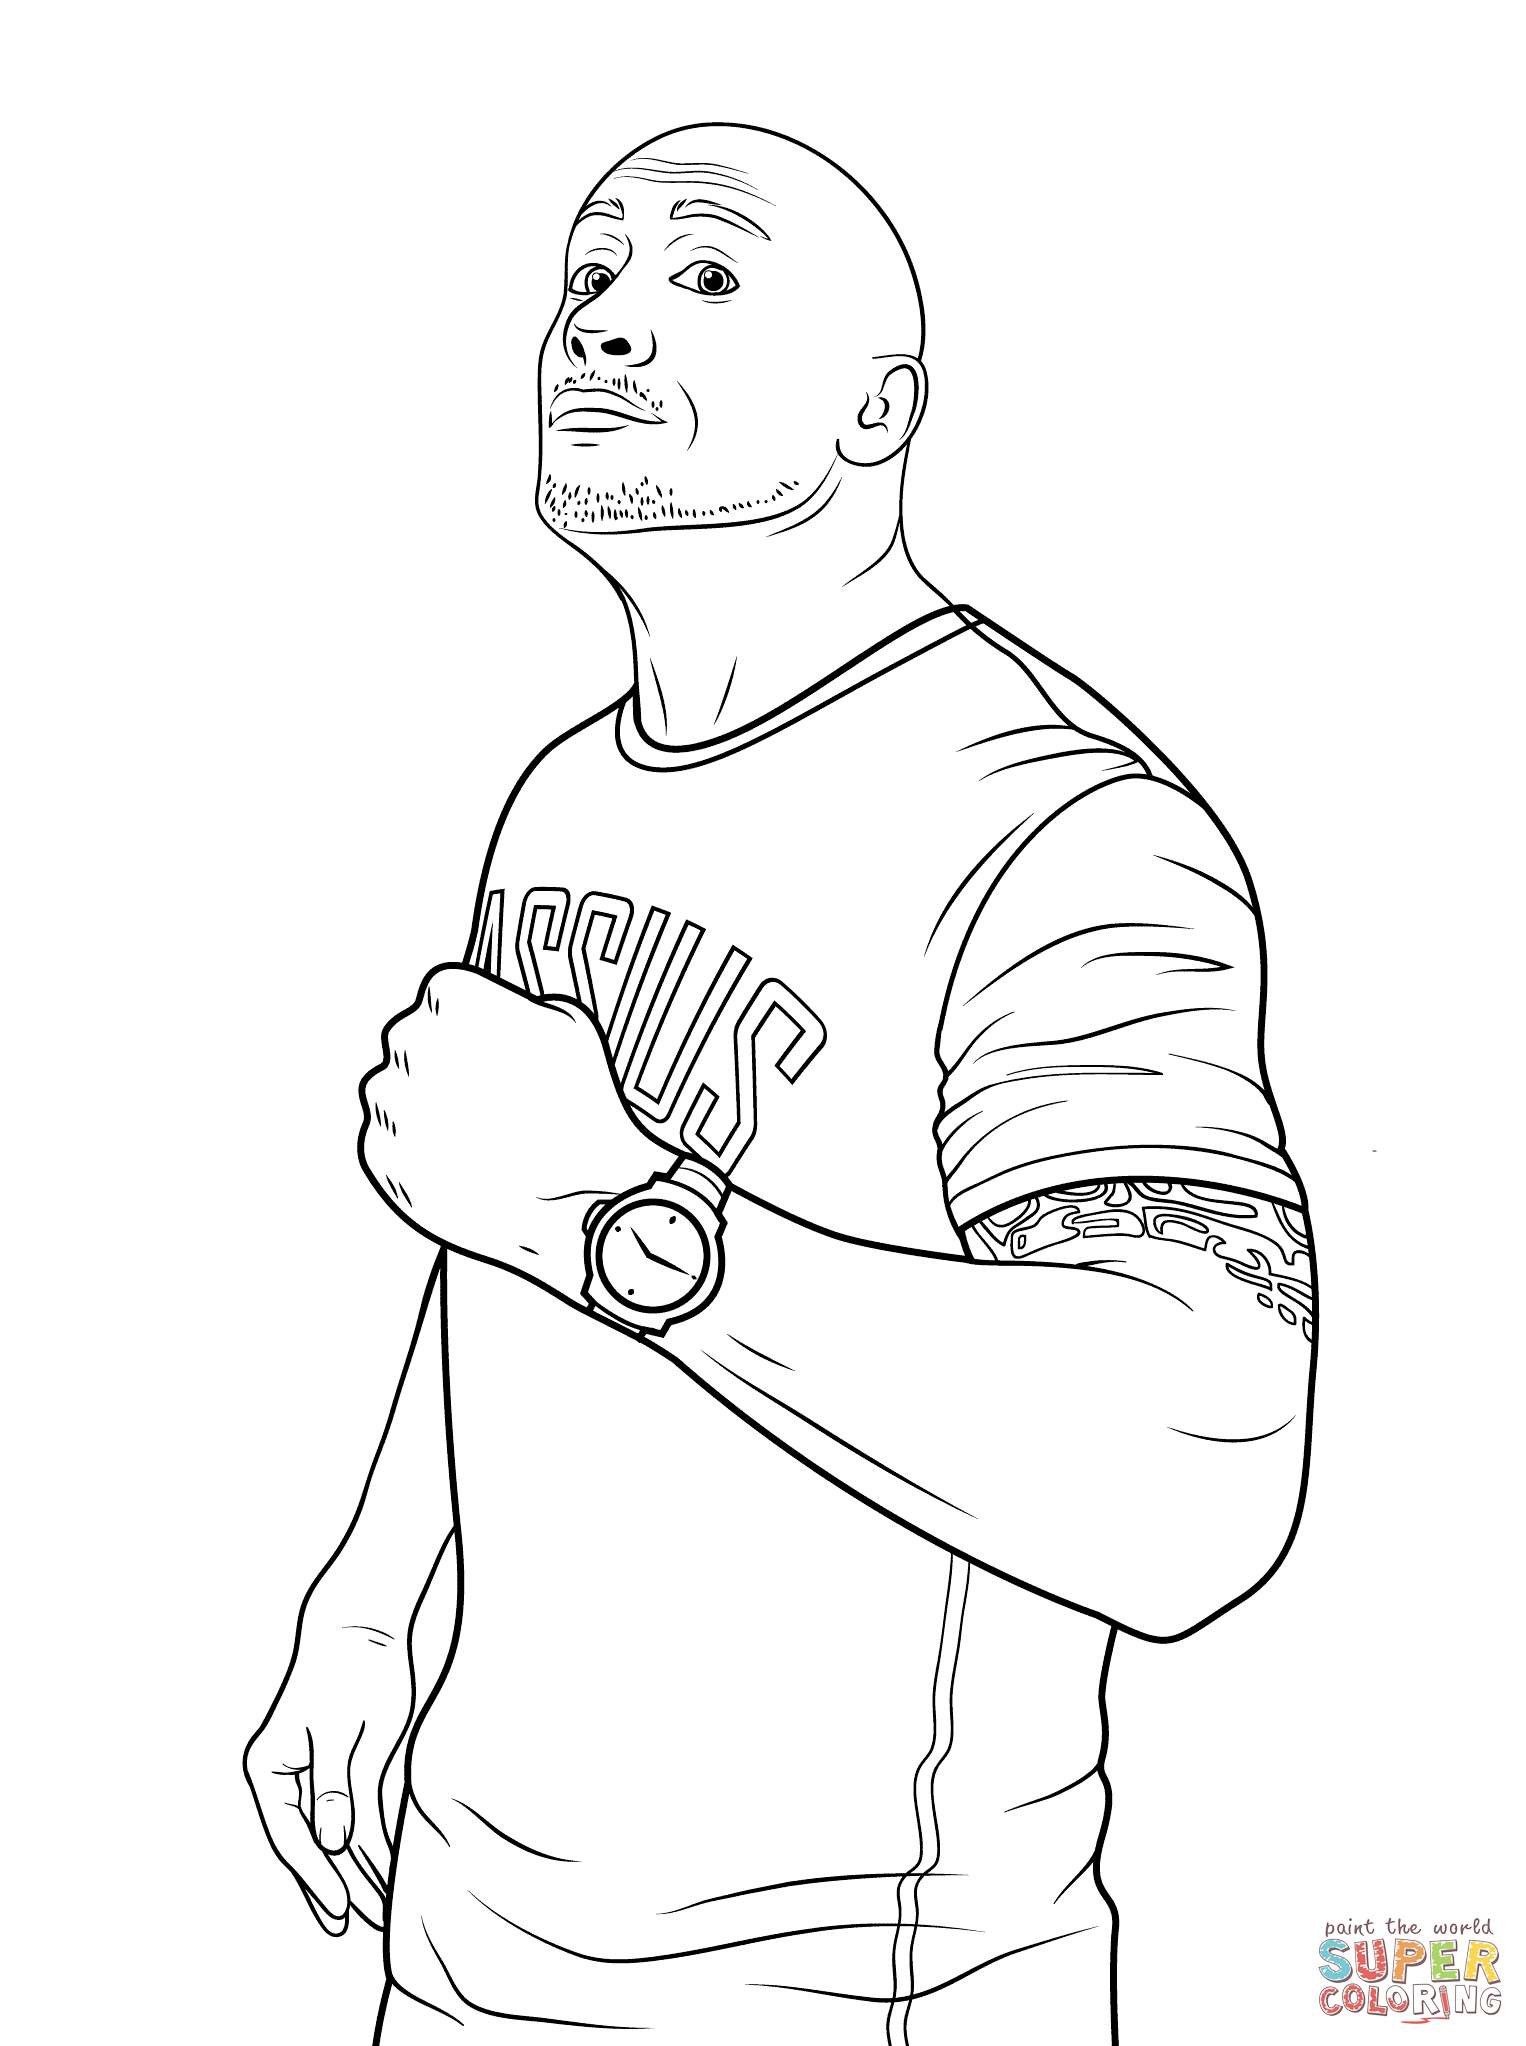 wwe coloring games wrestling coloring pages free online games videos for coloring games wwe